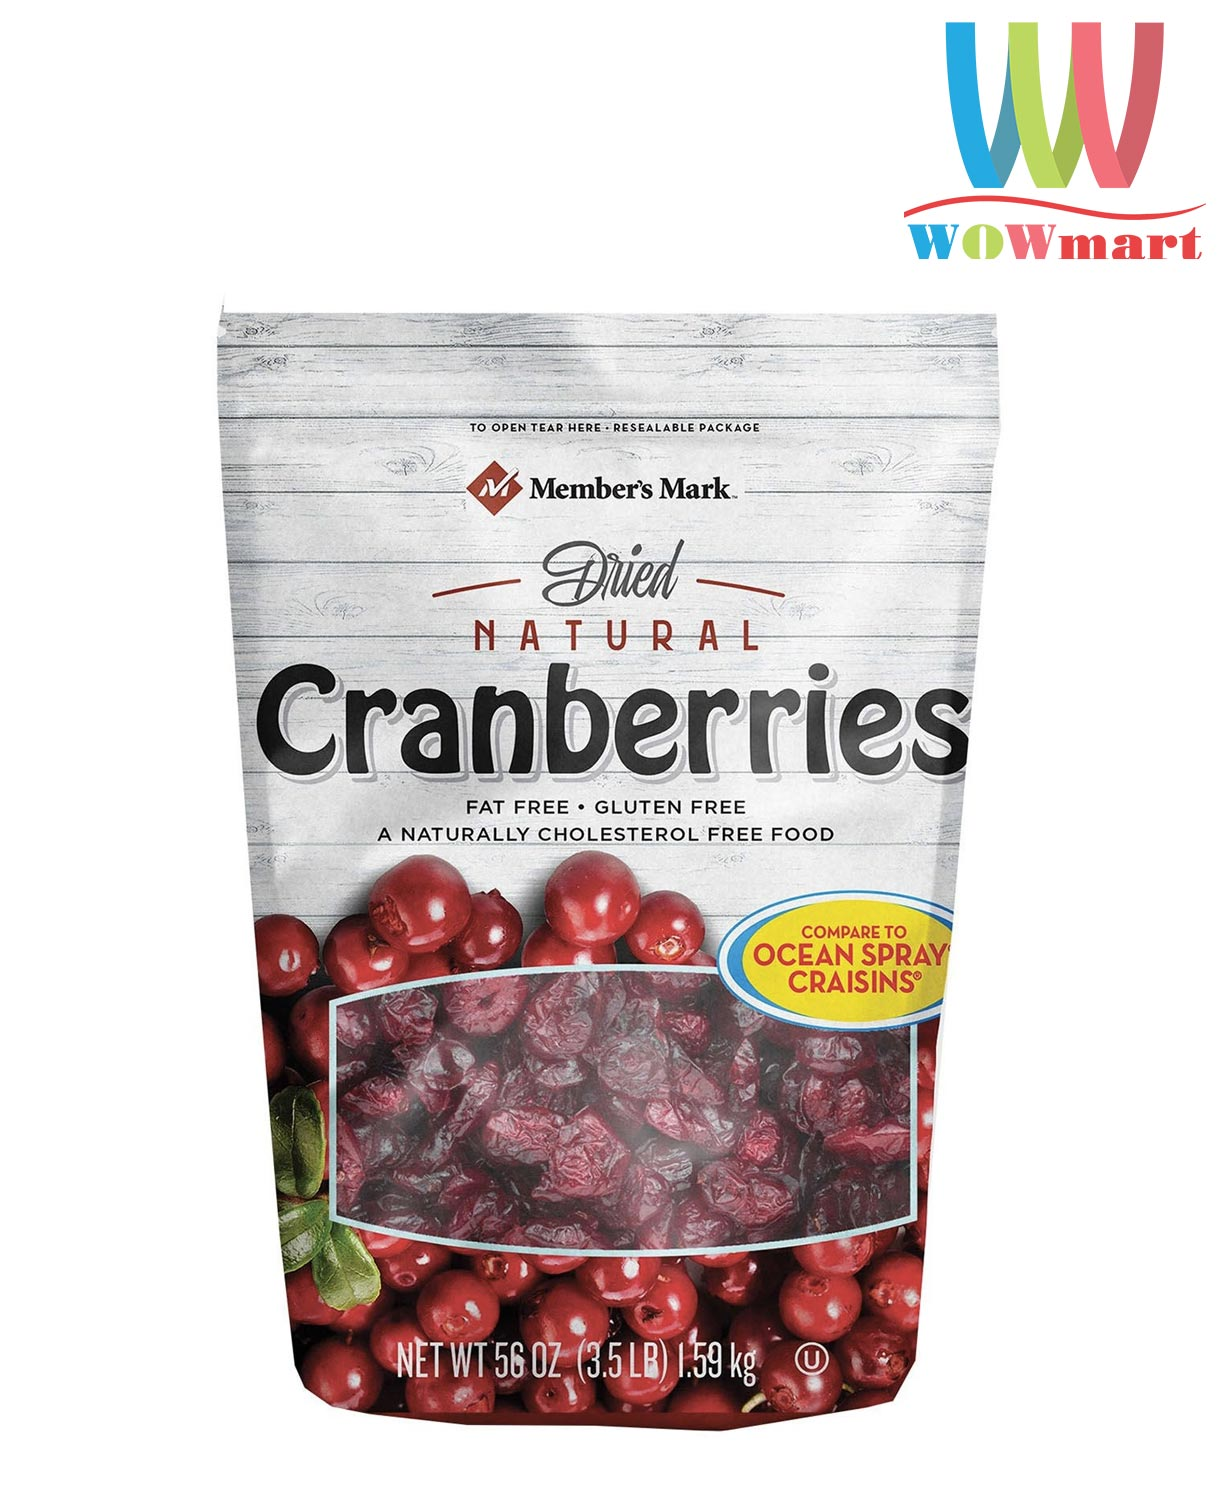 nam-viet-quoc-say-kho-tu-nhien-members-mark-dried-natural-cranberries-1-59kg